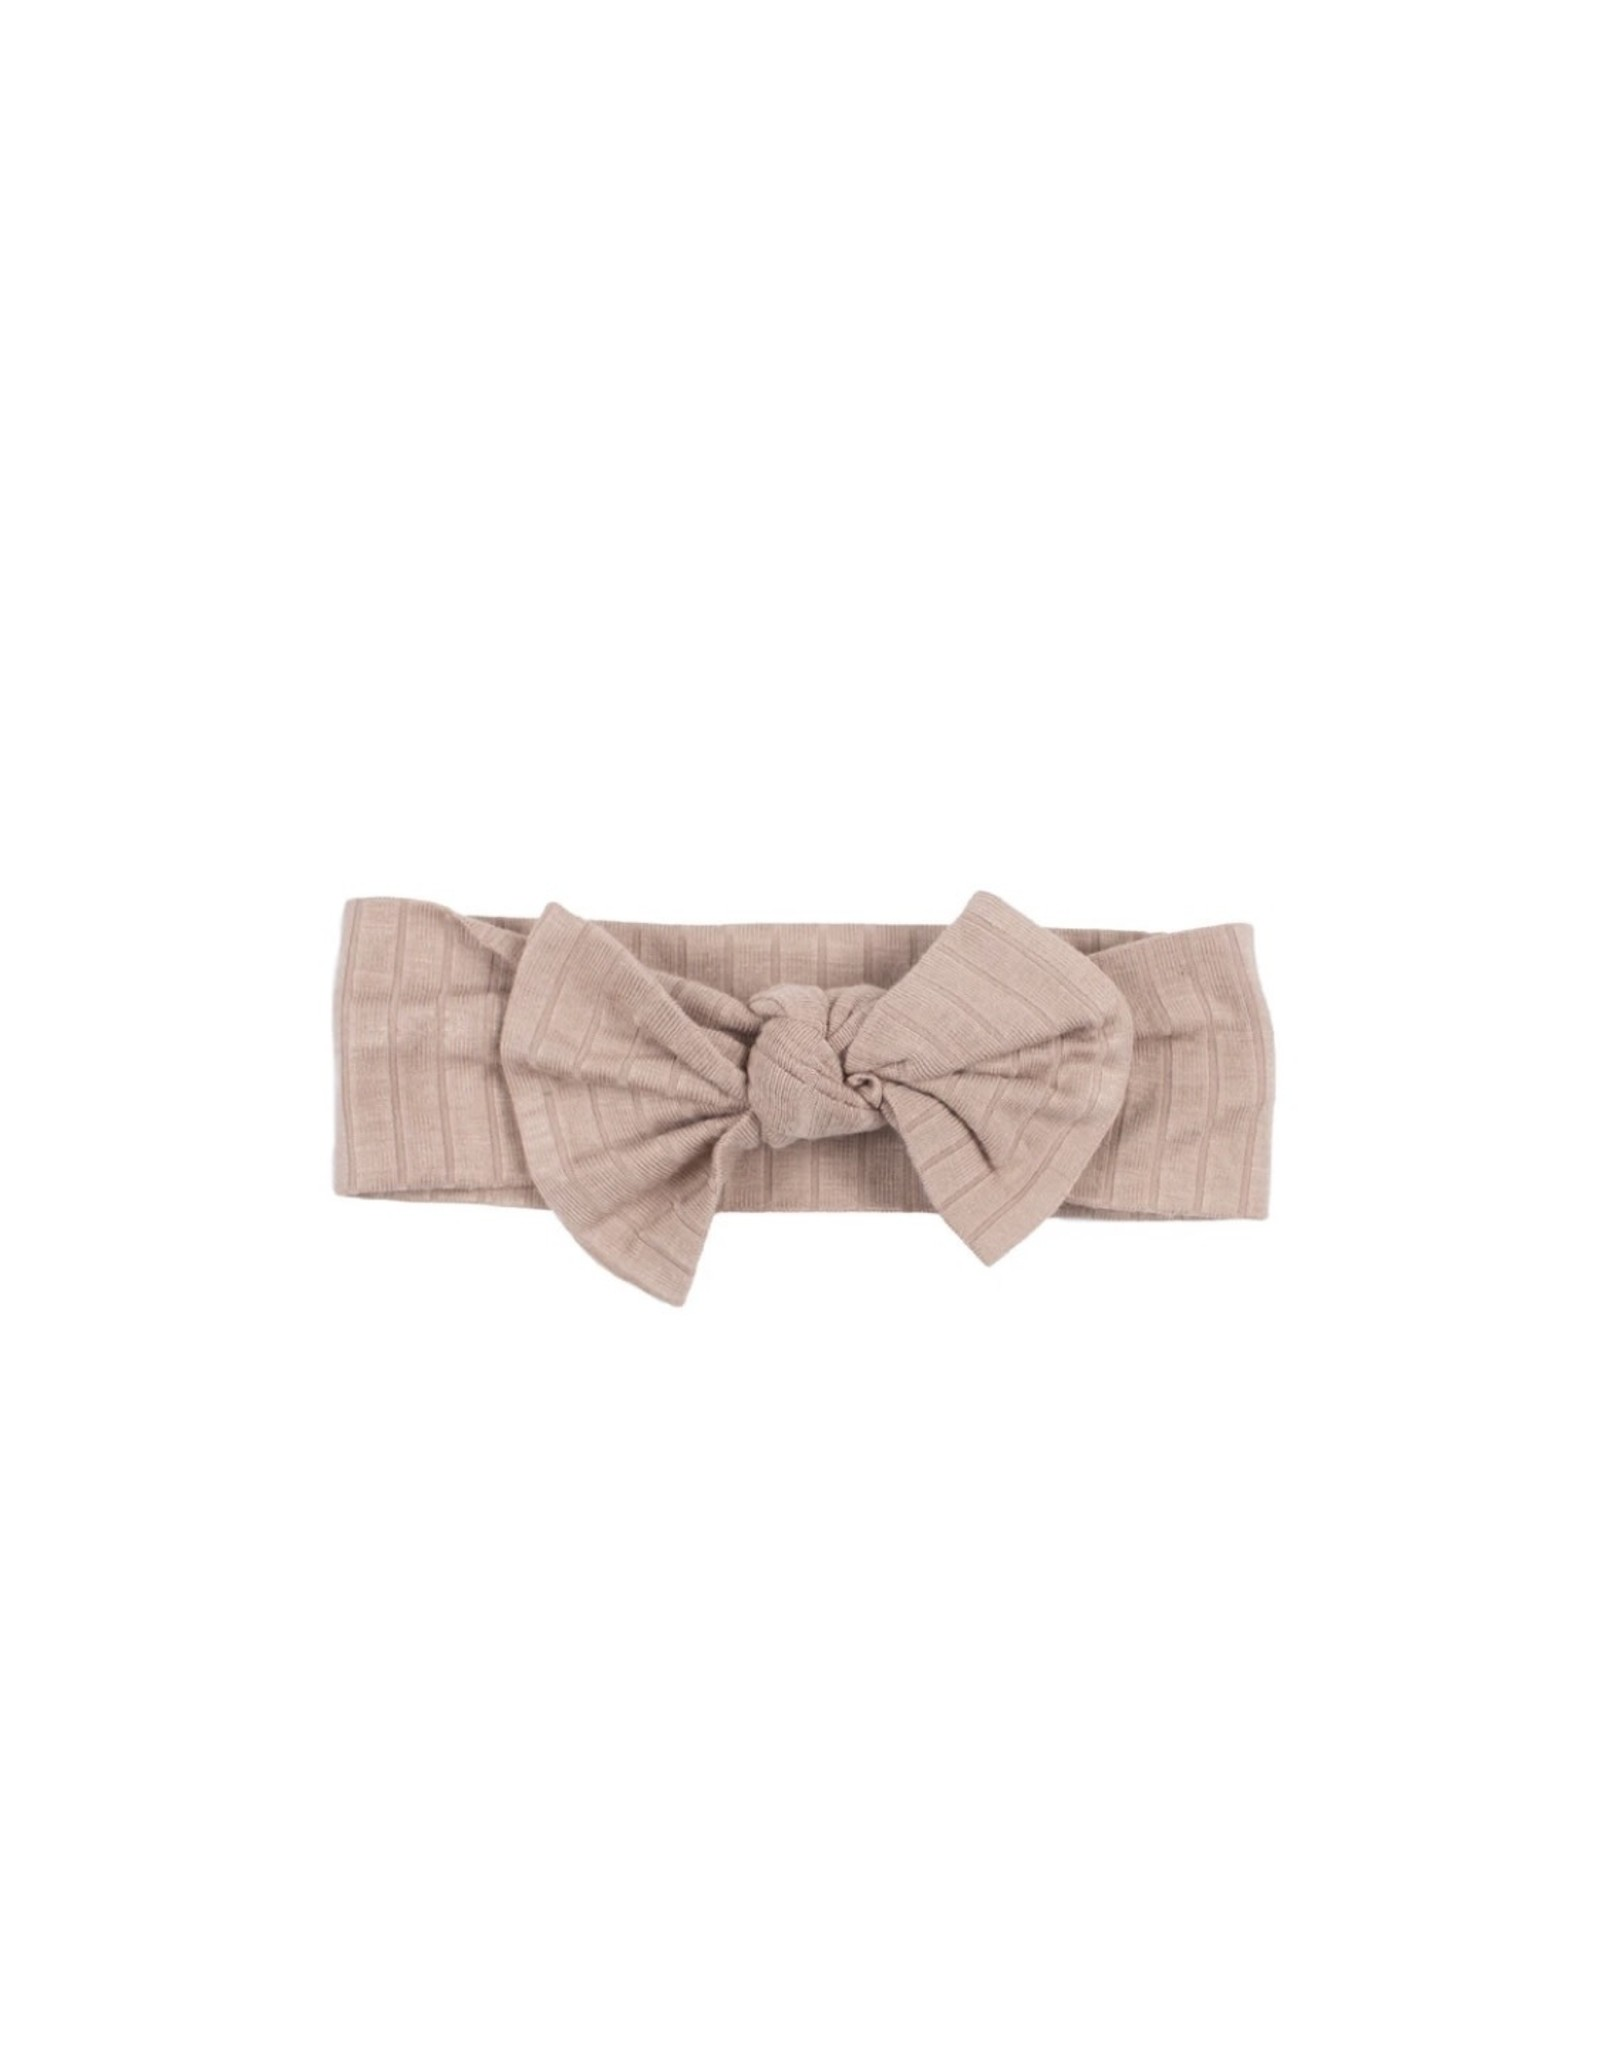 Brave Little Ones Brave Little Ones- Rosewood Bow Headband